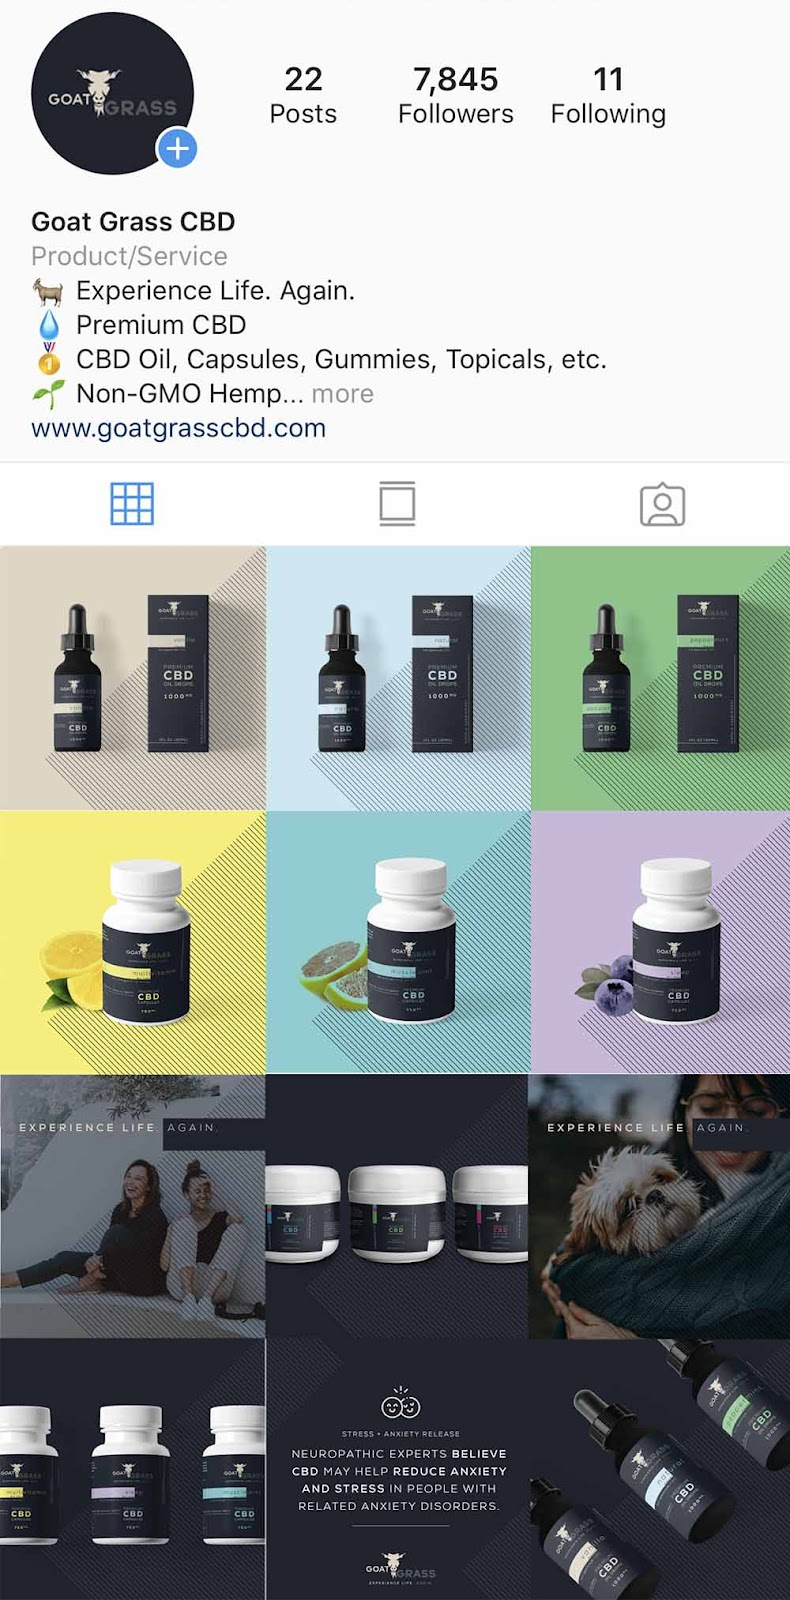 Goat Grass CBD, Instagram Marketing, CBD Marketing, Instagram Grid, Instagram CBD, Avintiv Media